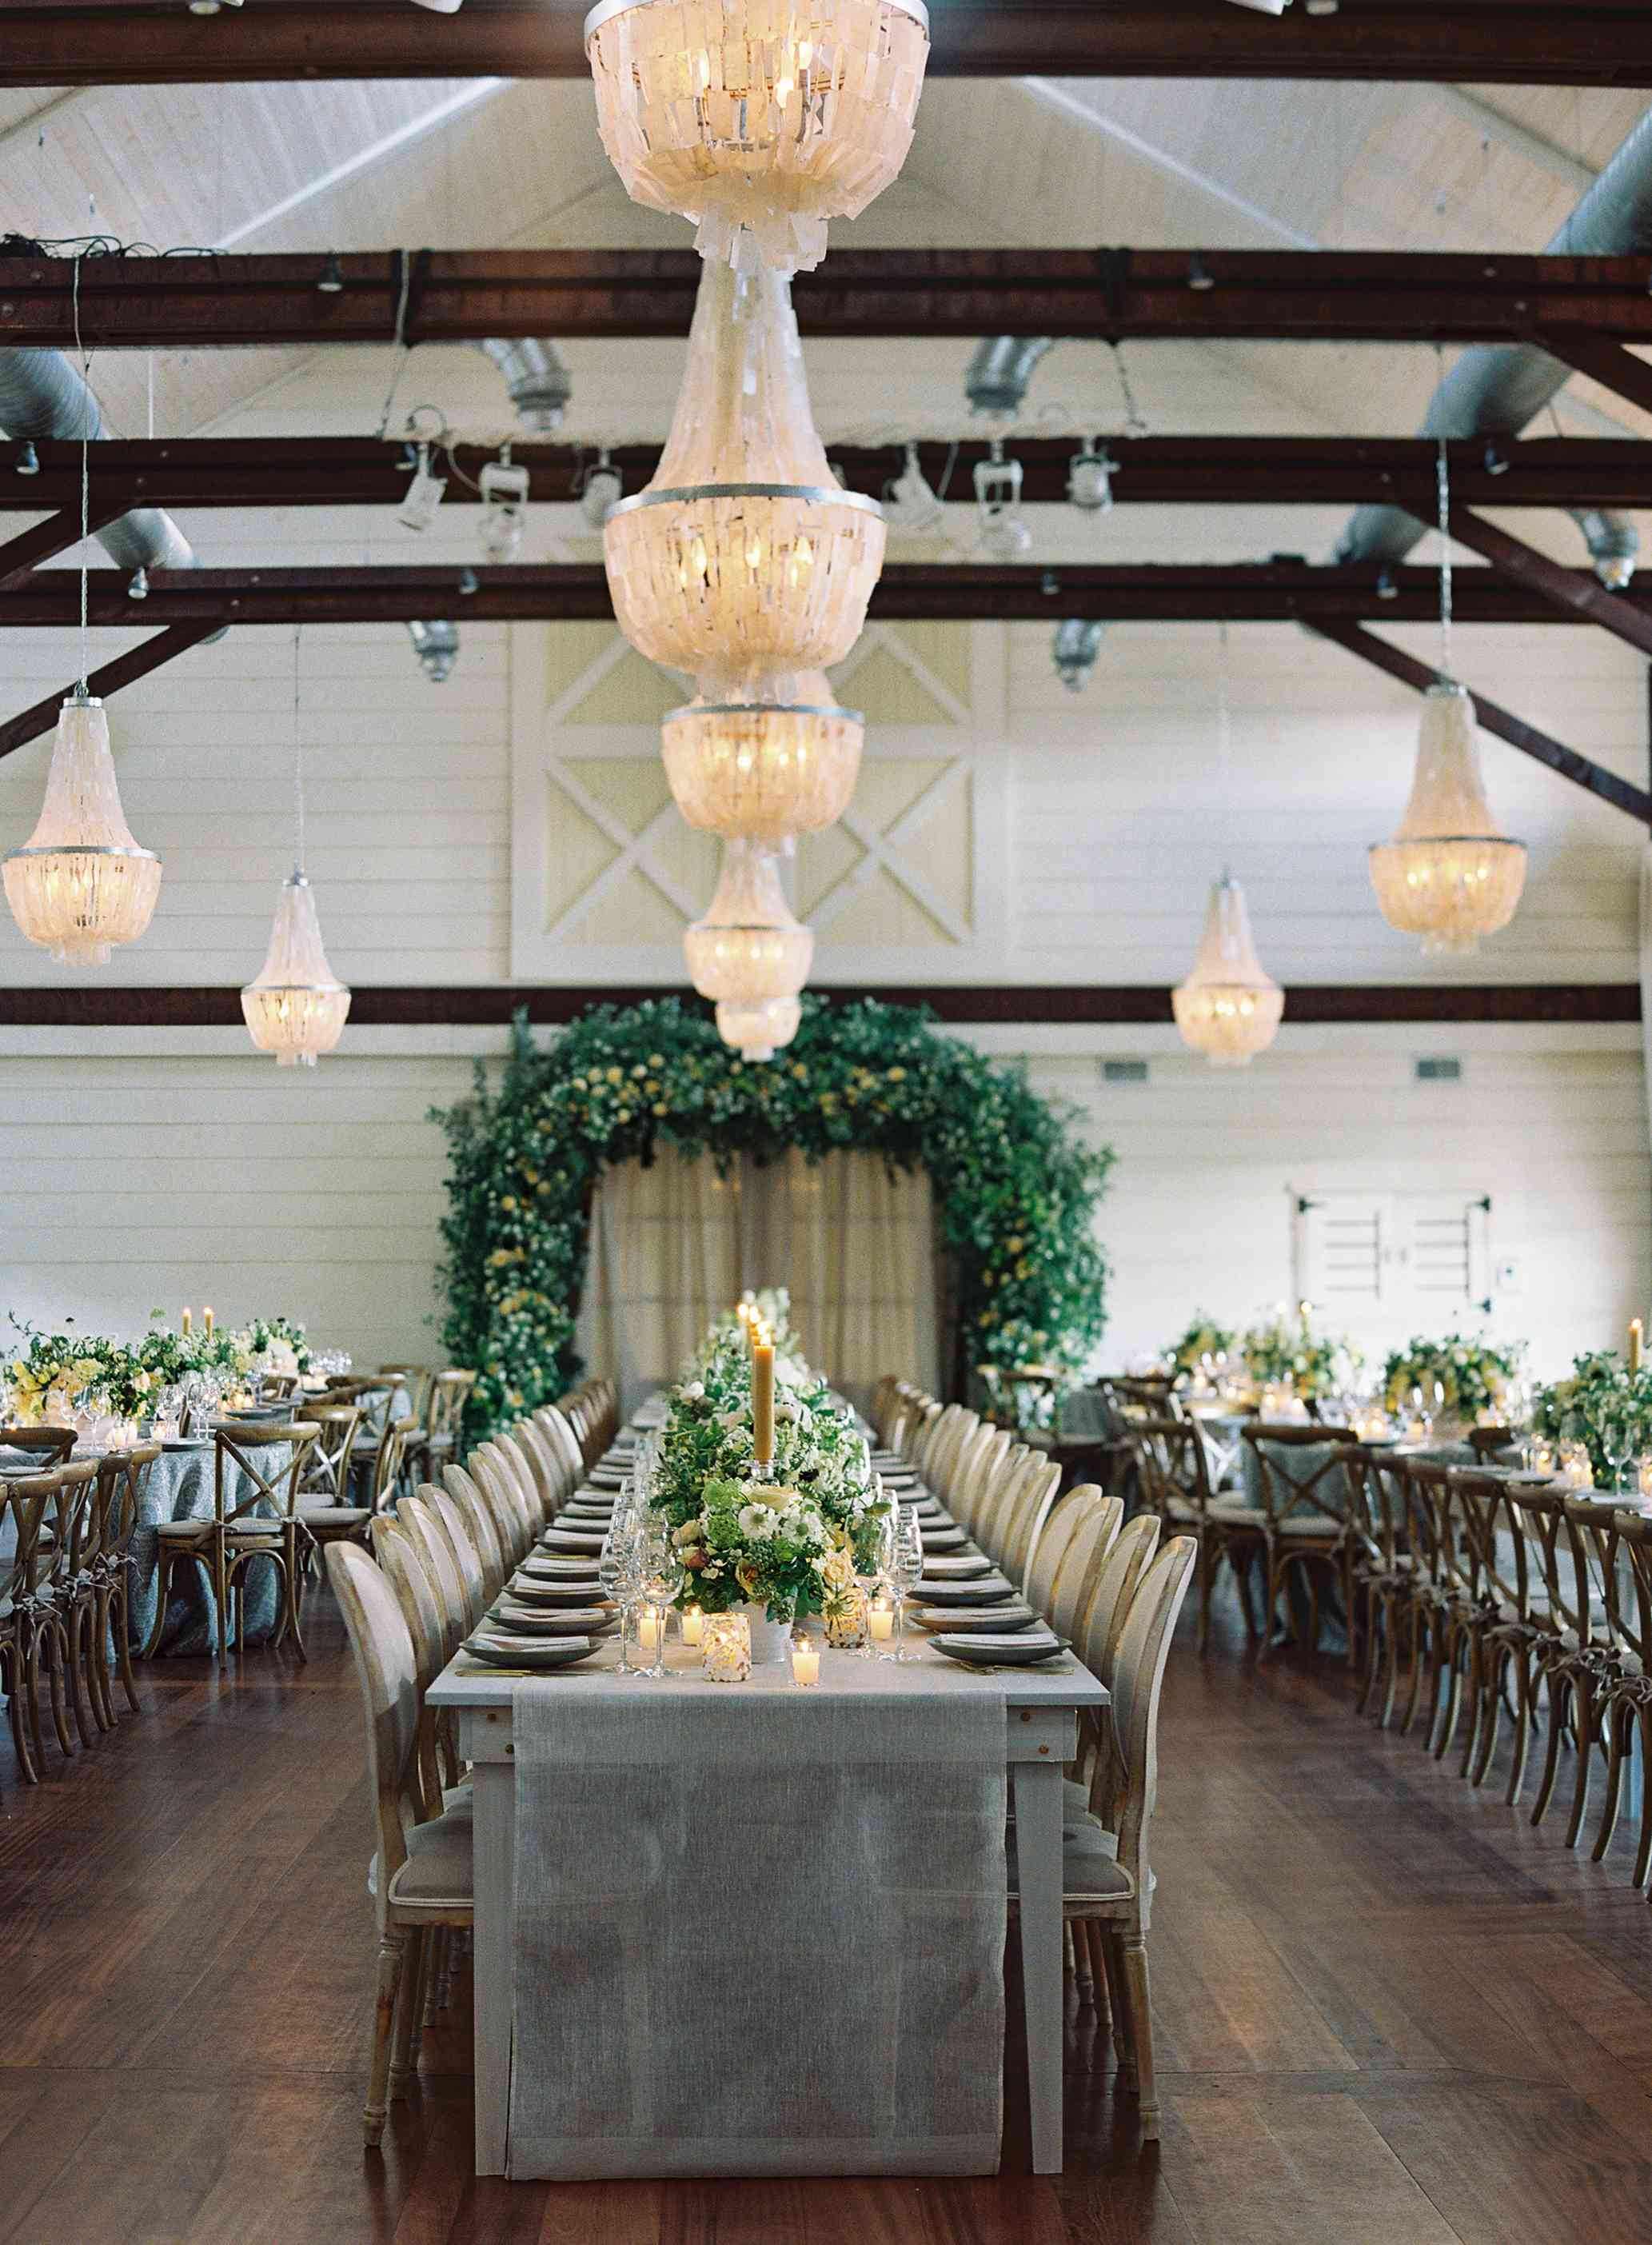 <p>chandeliers and rustic wood accents</p>